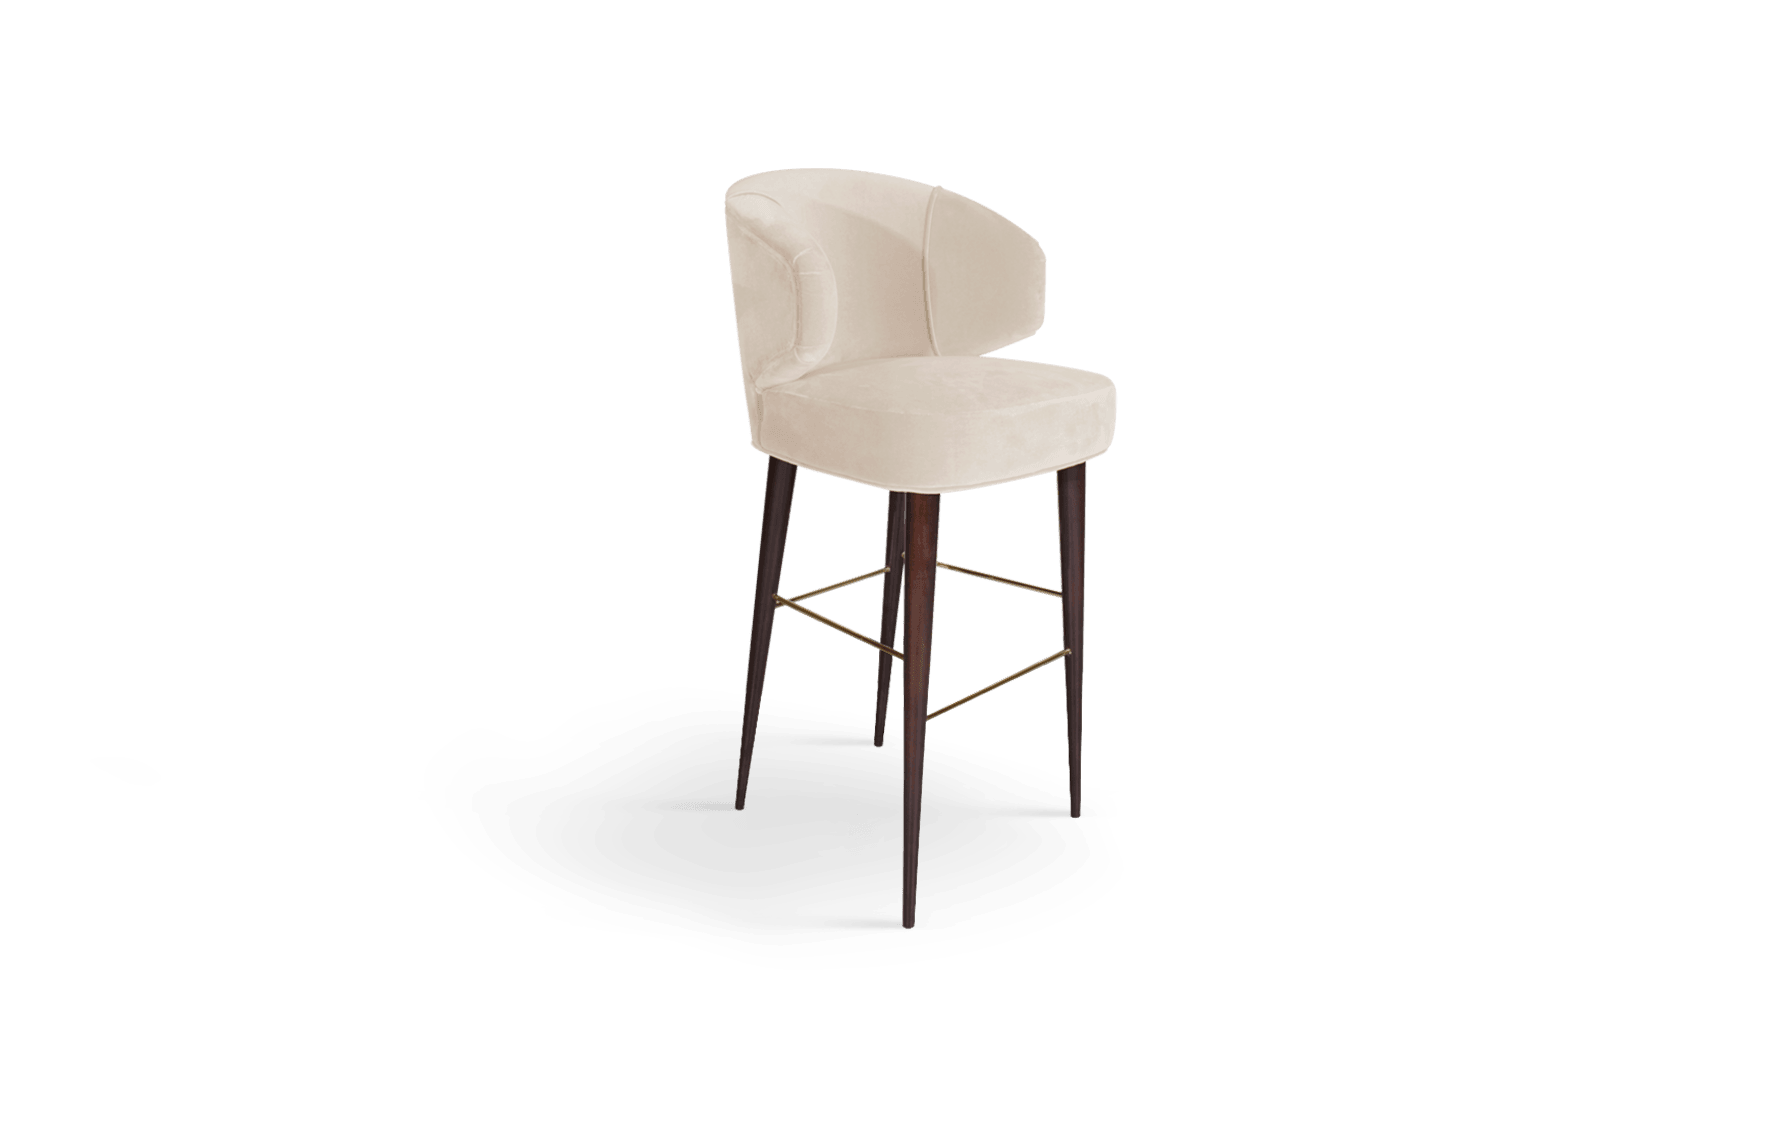 Tippi Mid-Century Modern Bar Chair in white cotton velvet